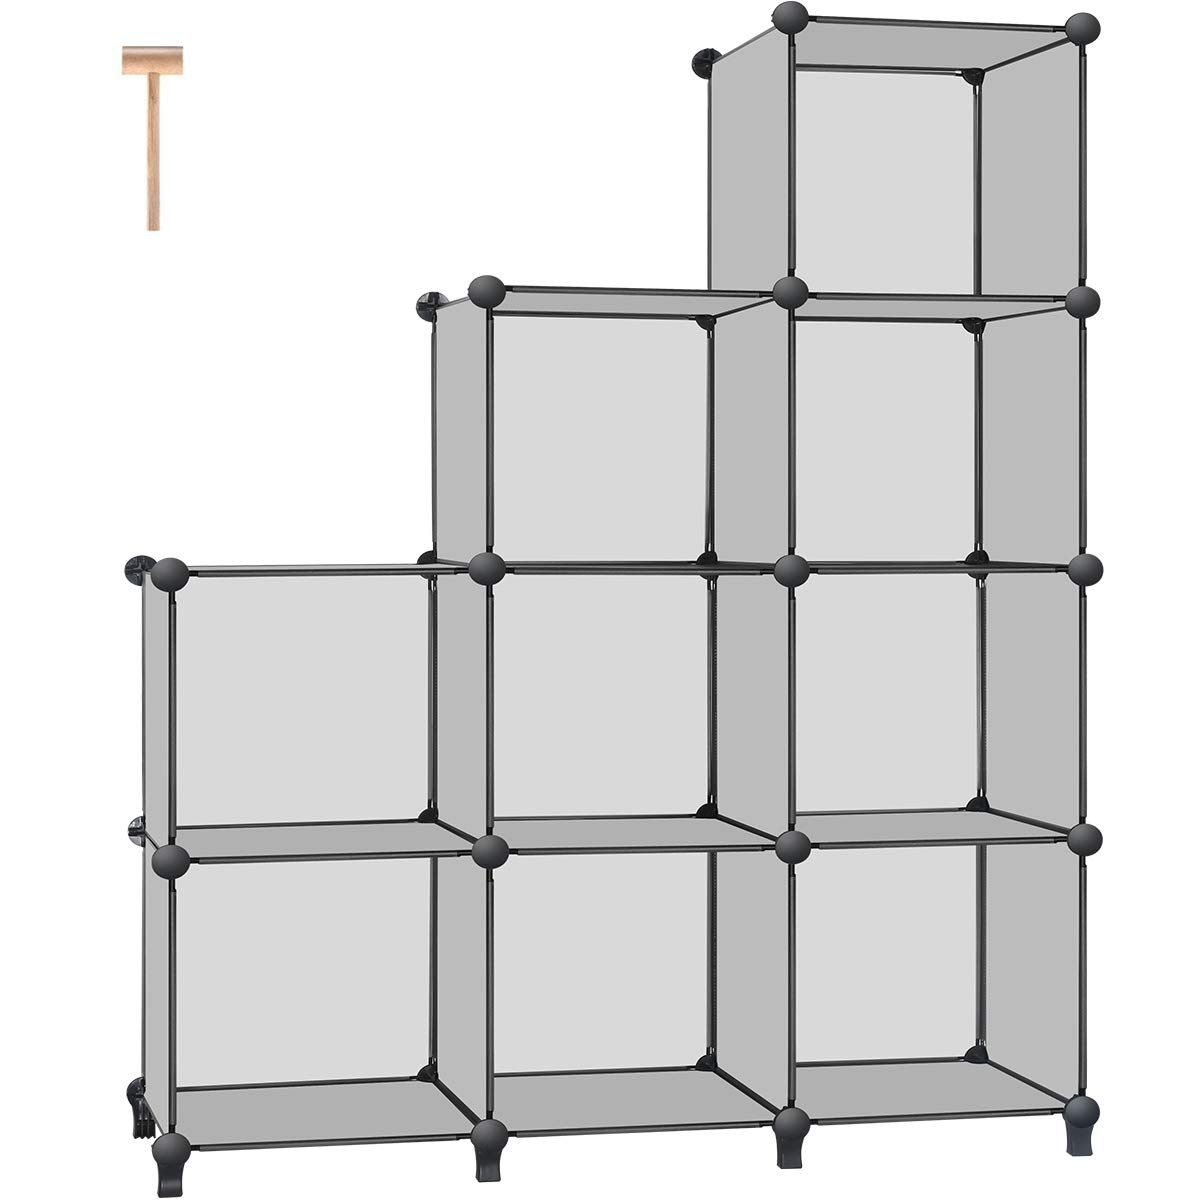 TomCare Cube Storage 9-Cube Bookshelf Storage Shelves Cube Organizer Closet Organizer Shelving Plastic Book Shelf Bookcase DIY Closet Cabinet Organizers Shelves for Bedroom Office Living Room, Grey